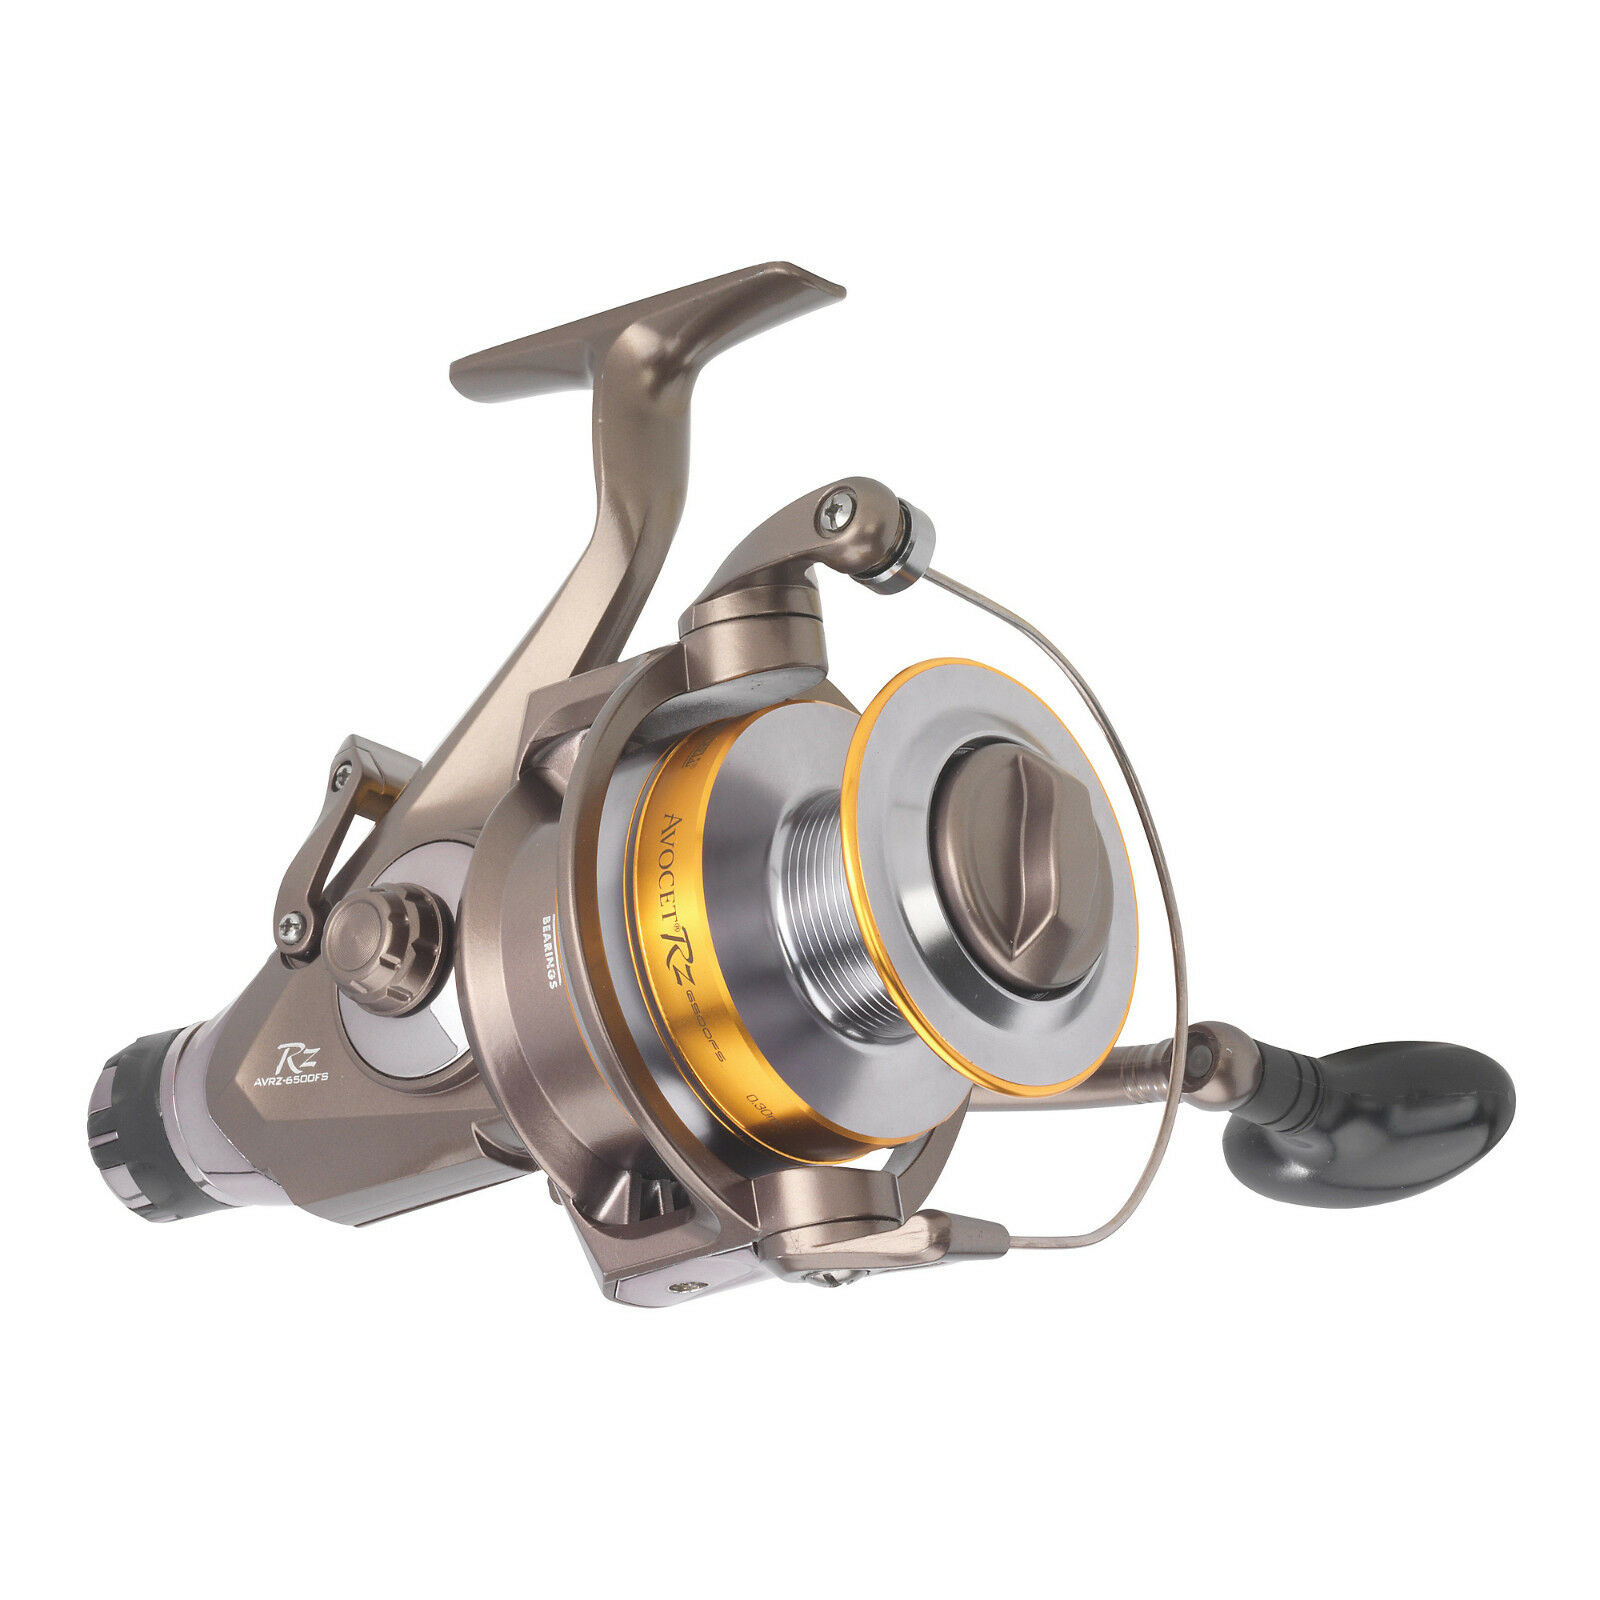 AVOCET 5500 FS  Freilaufrolle  Angelrolle von  Mitchell   Pure Fishing